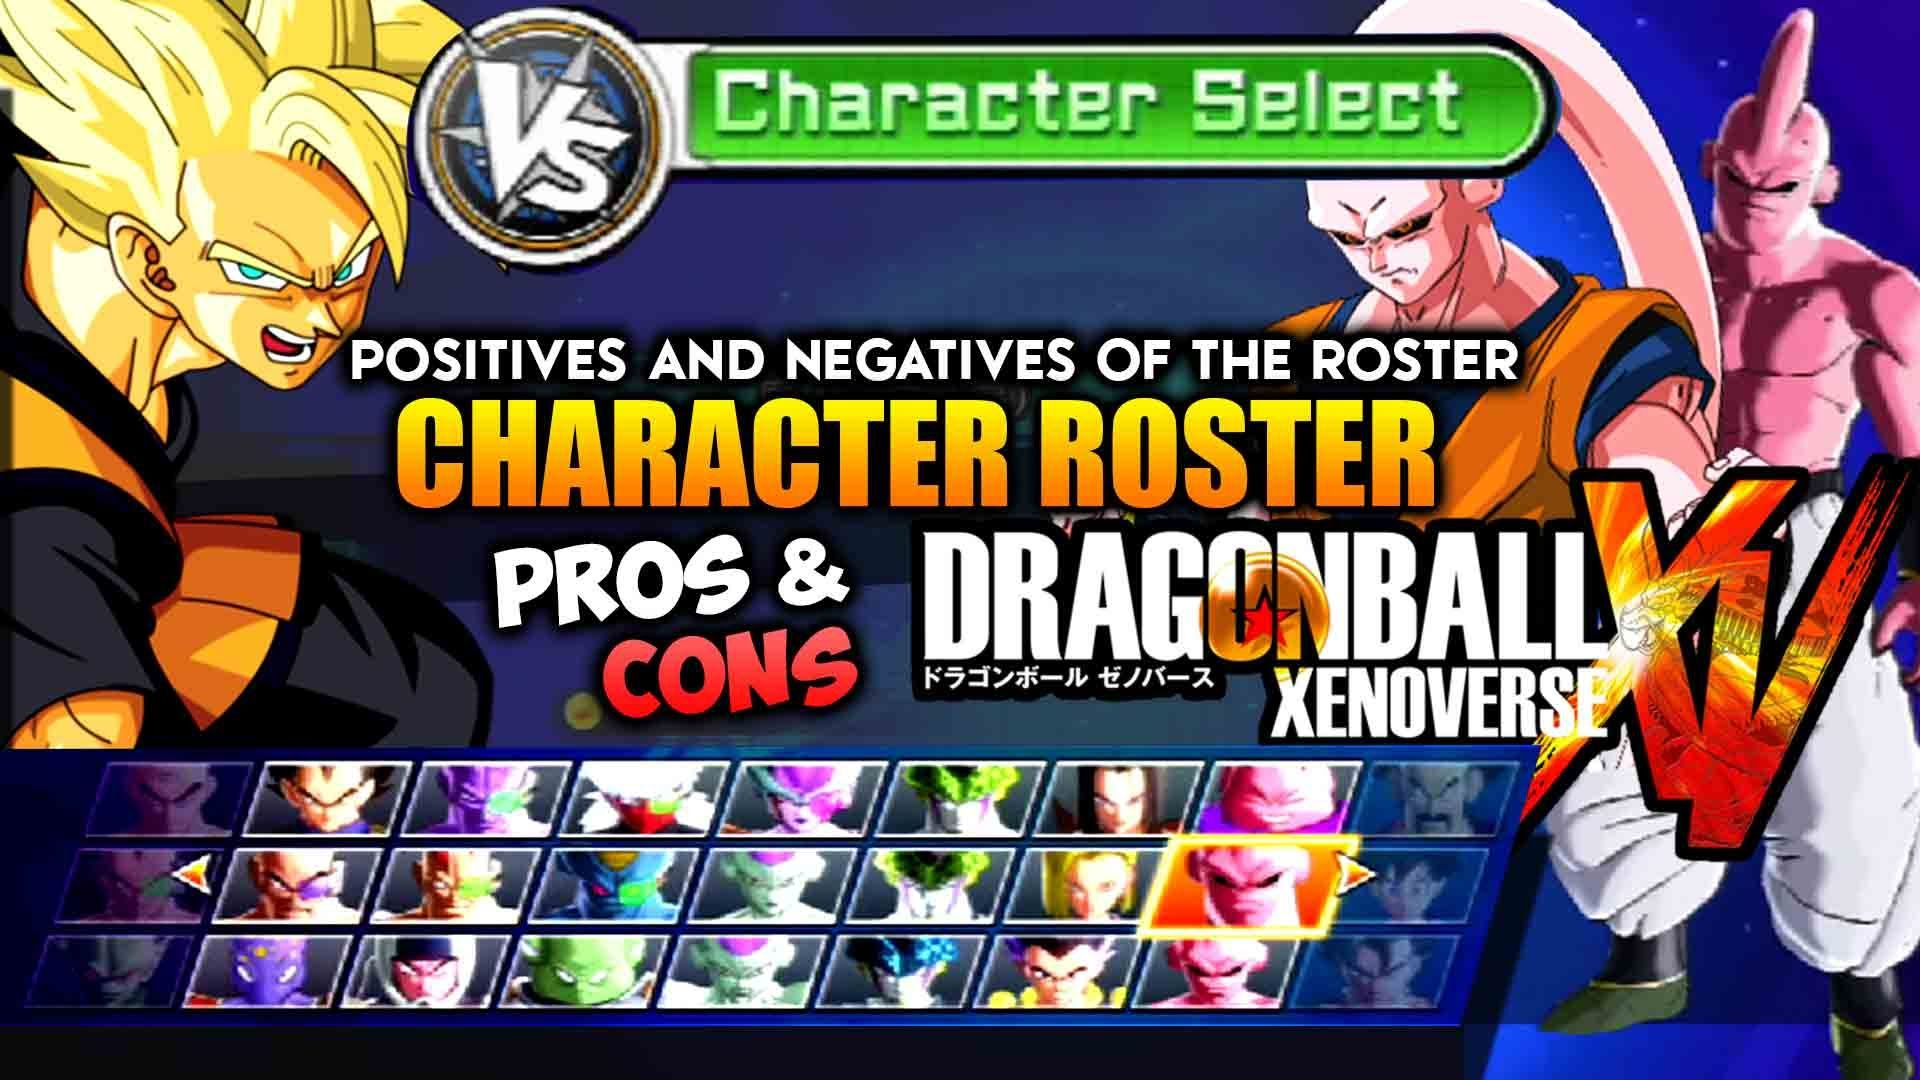 Dragon Ball Xenoverse Character Roster Full Pros Cons